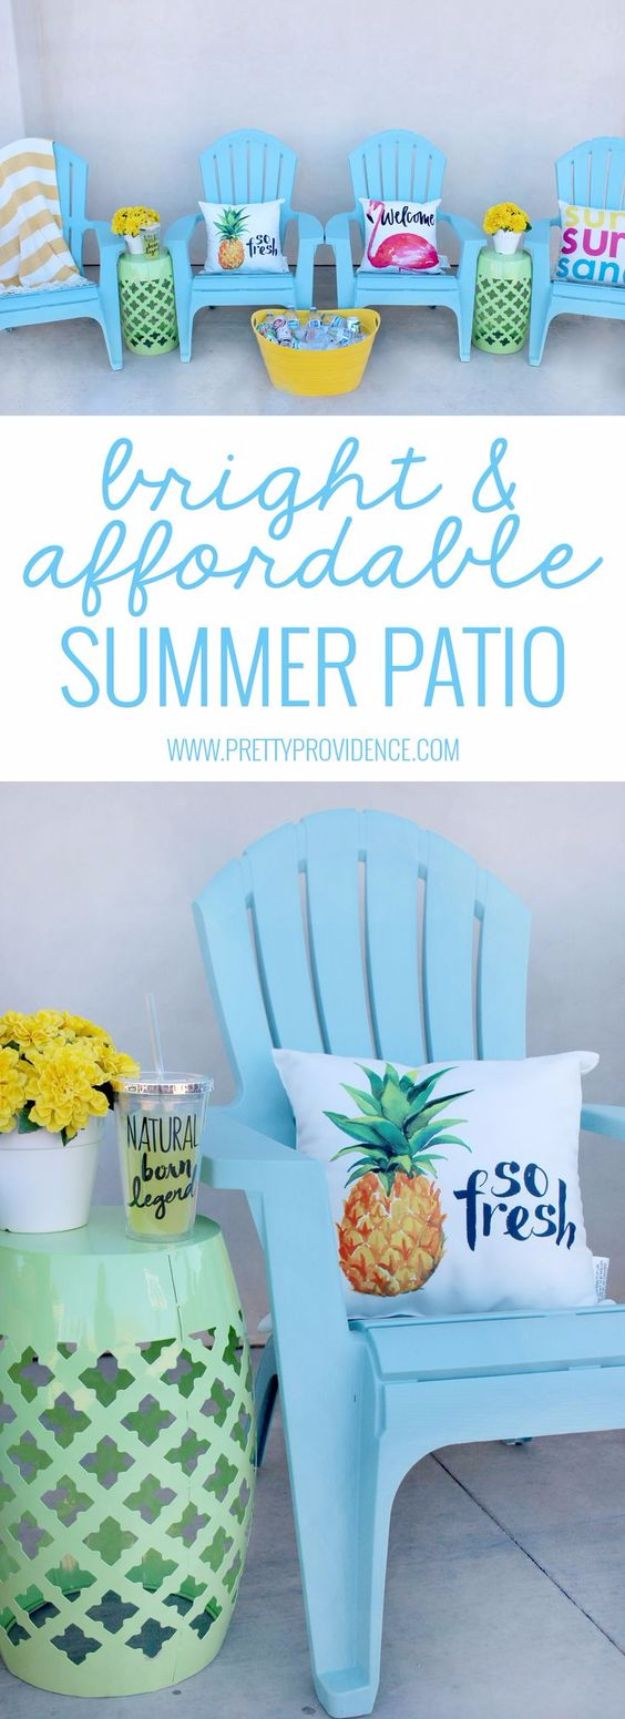 DIY Porch and Patio Ideas - Bright And Affordable Patio - Decor Projects and Furniture Tutorials You Can Build for the Outdoors - Lights and Lighting, Mason Jar Crafts, Rocking Chairs, Wreaths, Swings, Bench, Cushions, Chairs, Daybeds and Pallet Signs